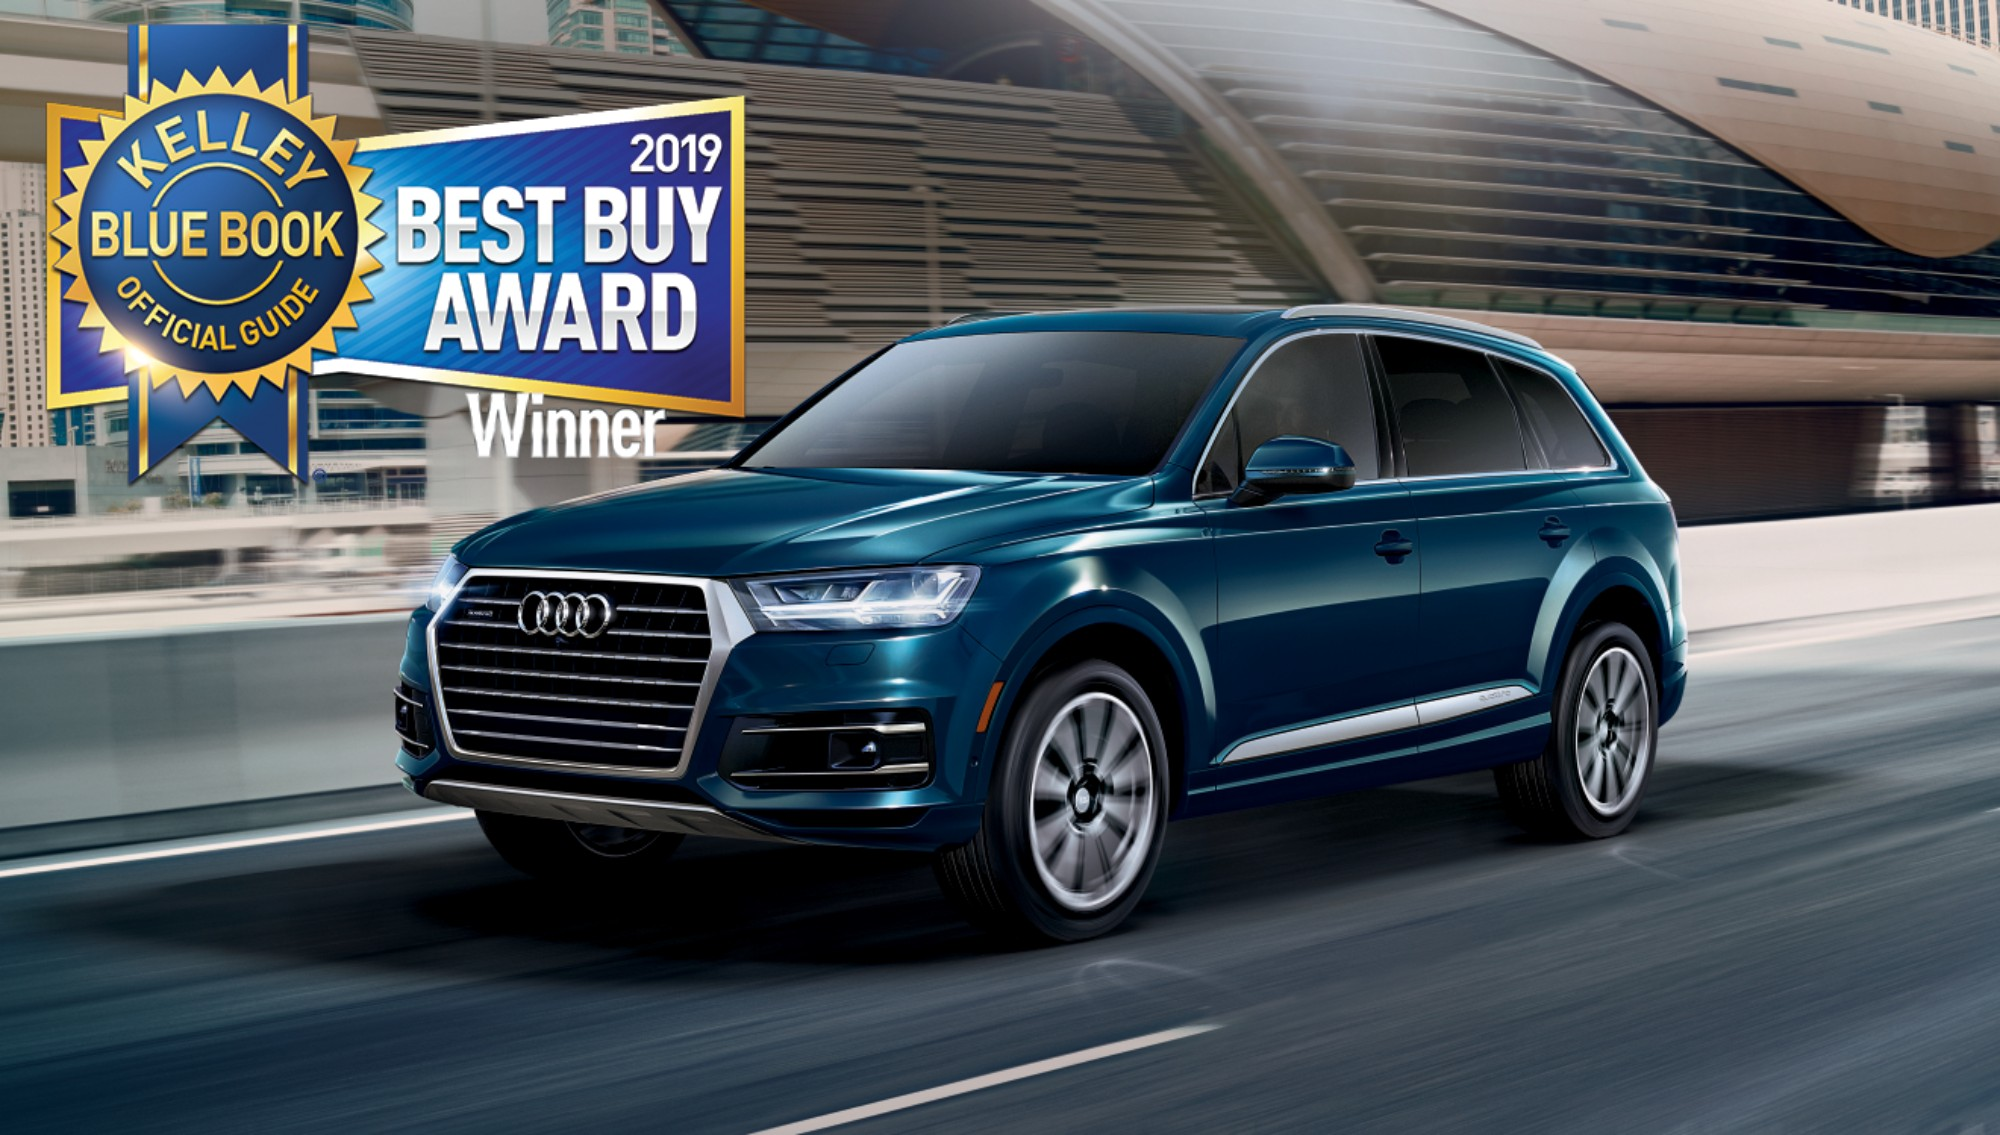 The 2019 Audi Q5 And Q7 Earn Kelley Blue Book Best Buy Awards Audi